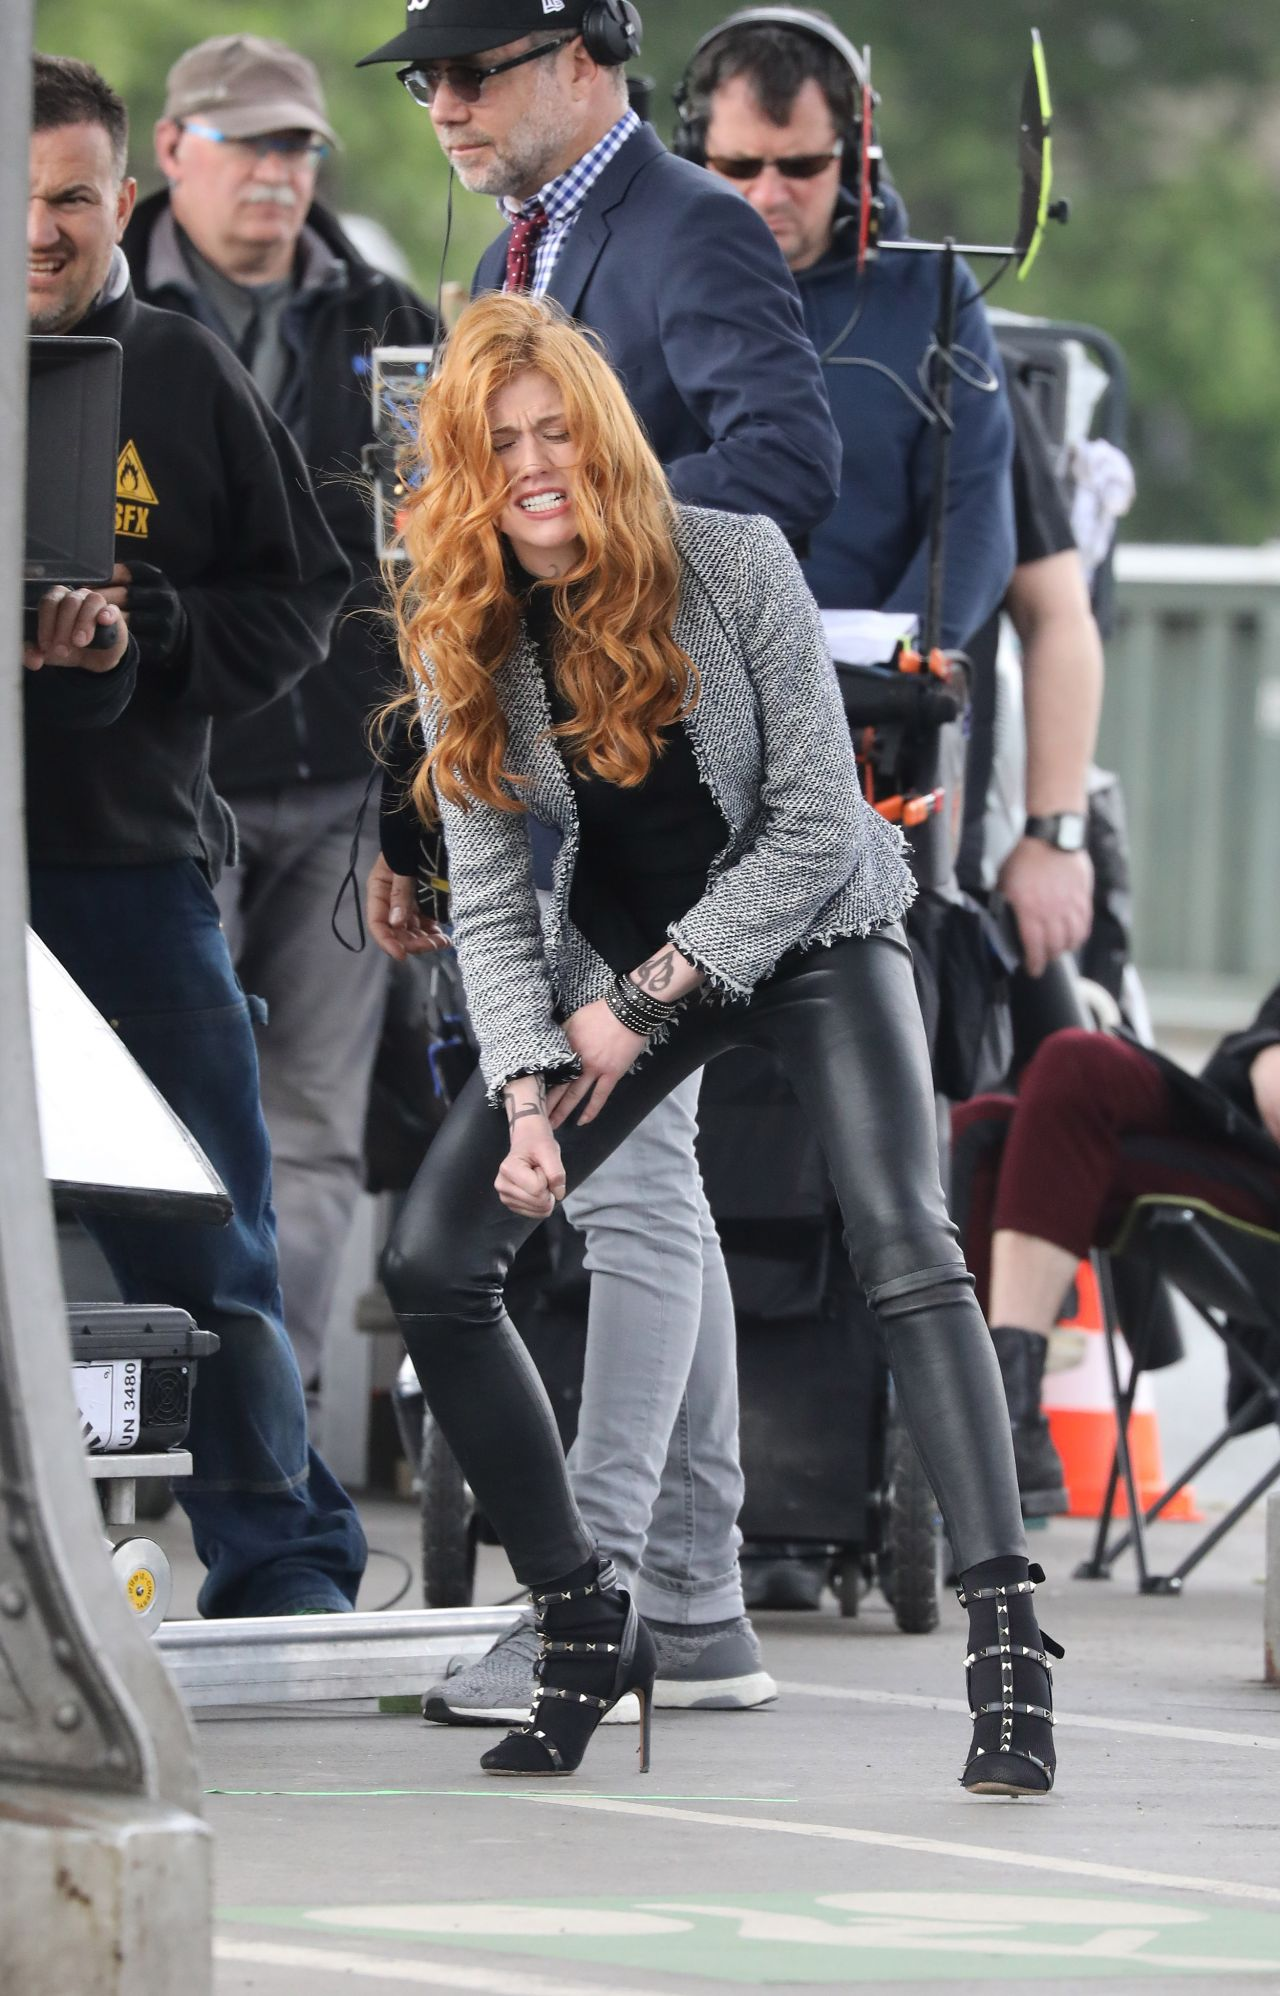 Filming In Progress The Most Beautiful Actress In The World: Katherine McNamara And Dominic Sherwood